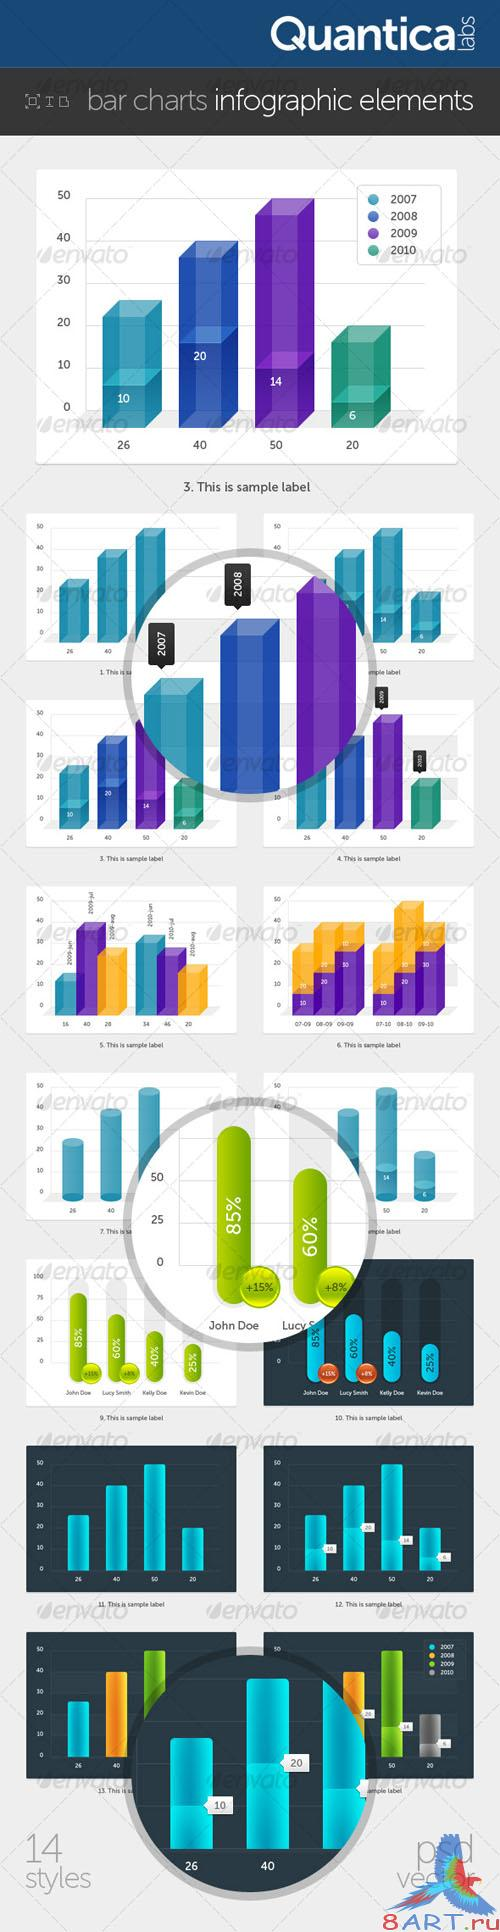 GraphicRiver Bar Charts Infographic Elements - REUPLOAD